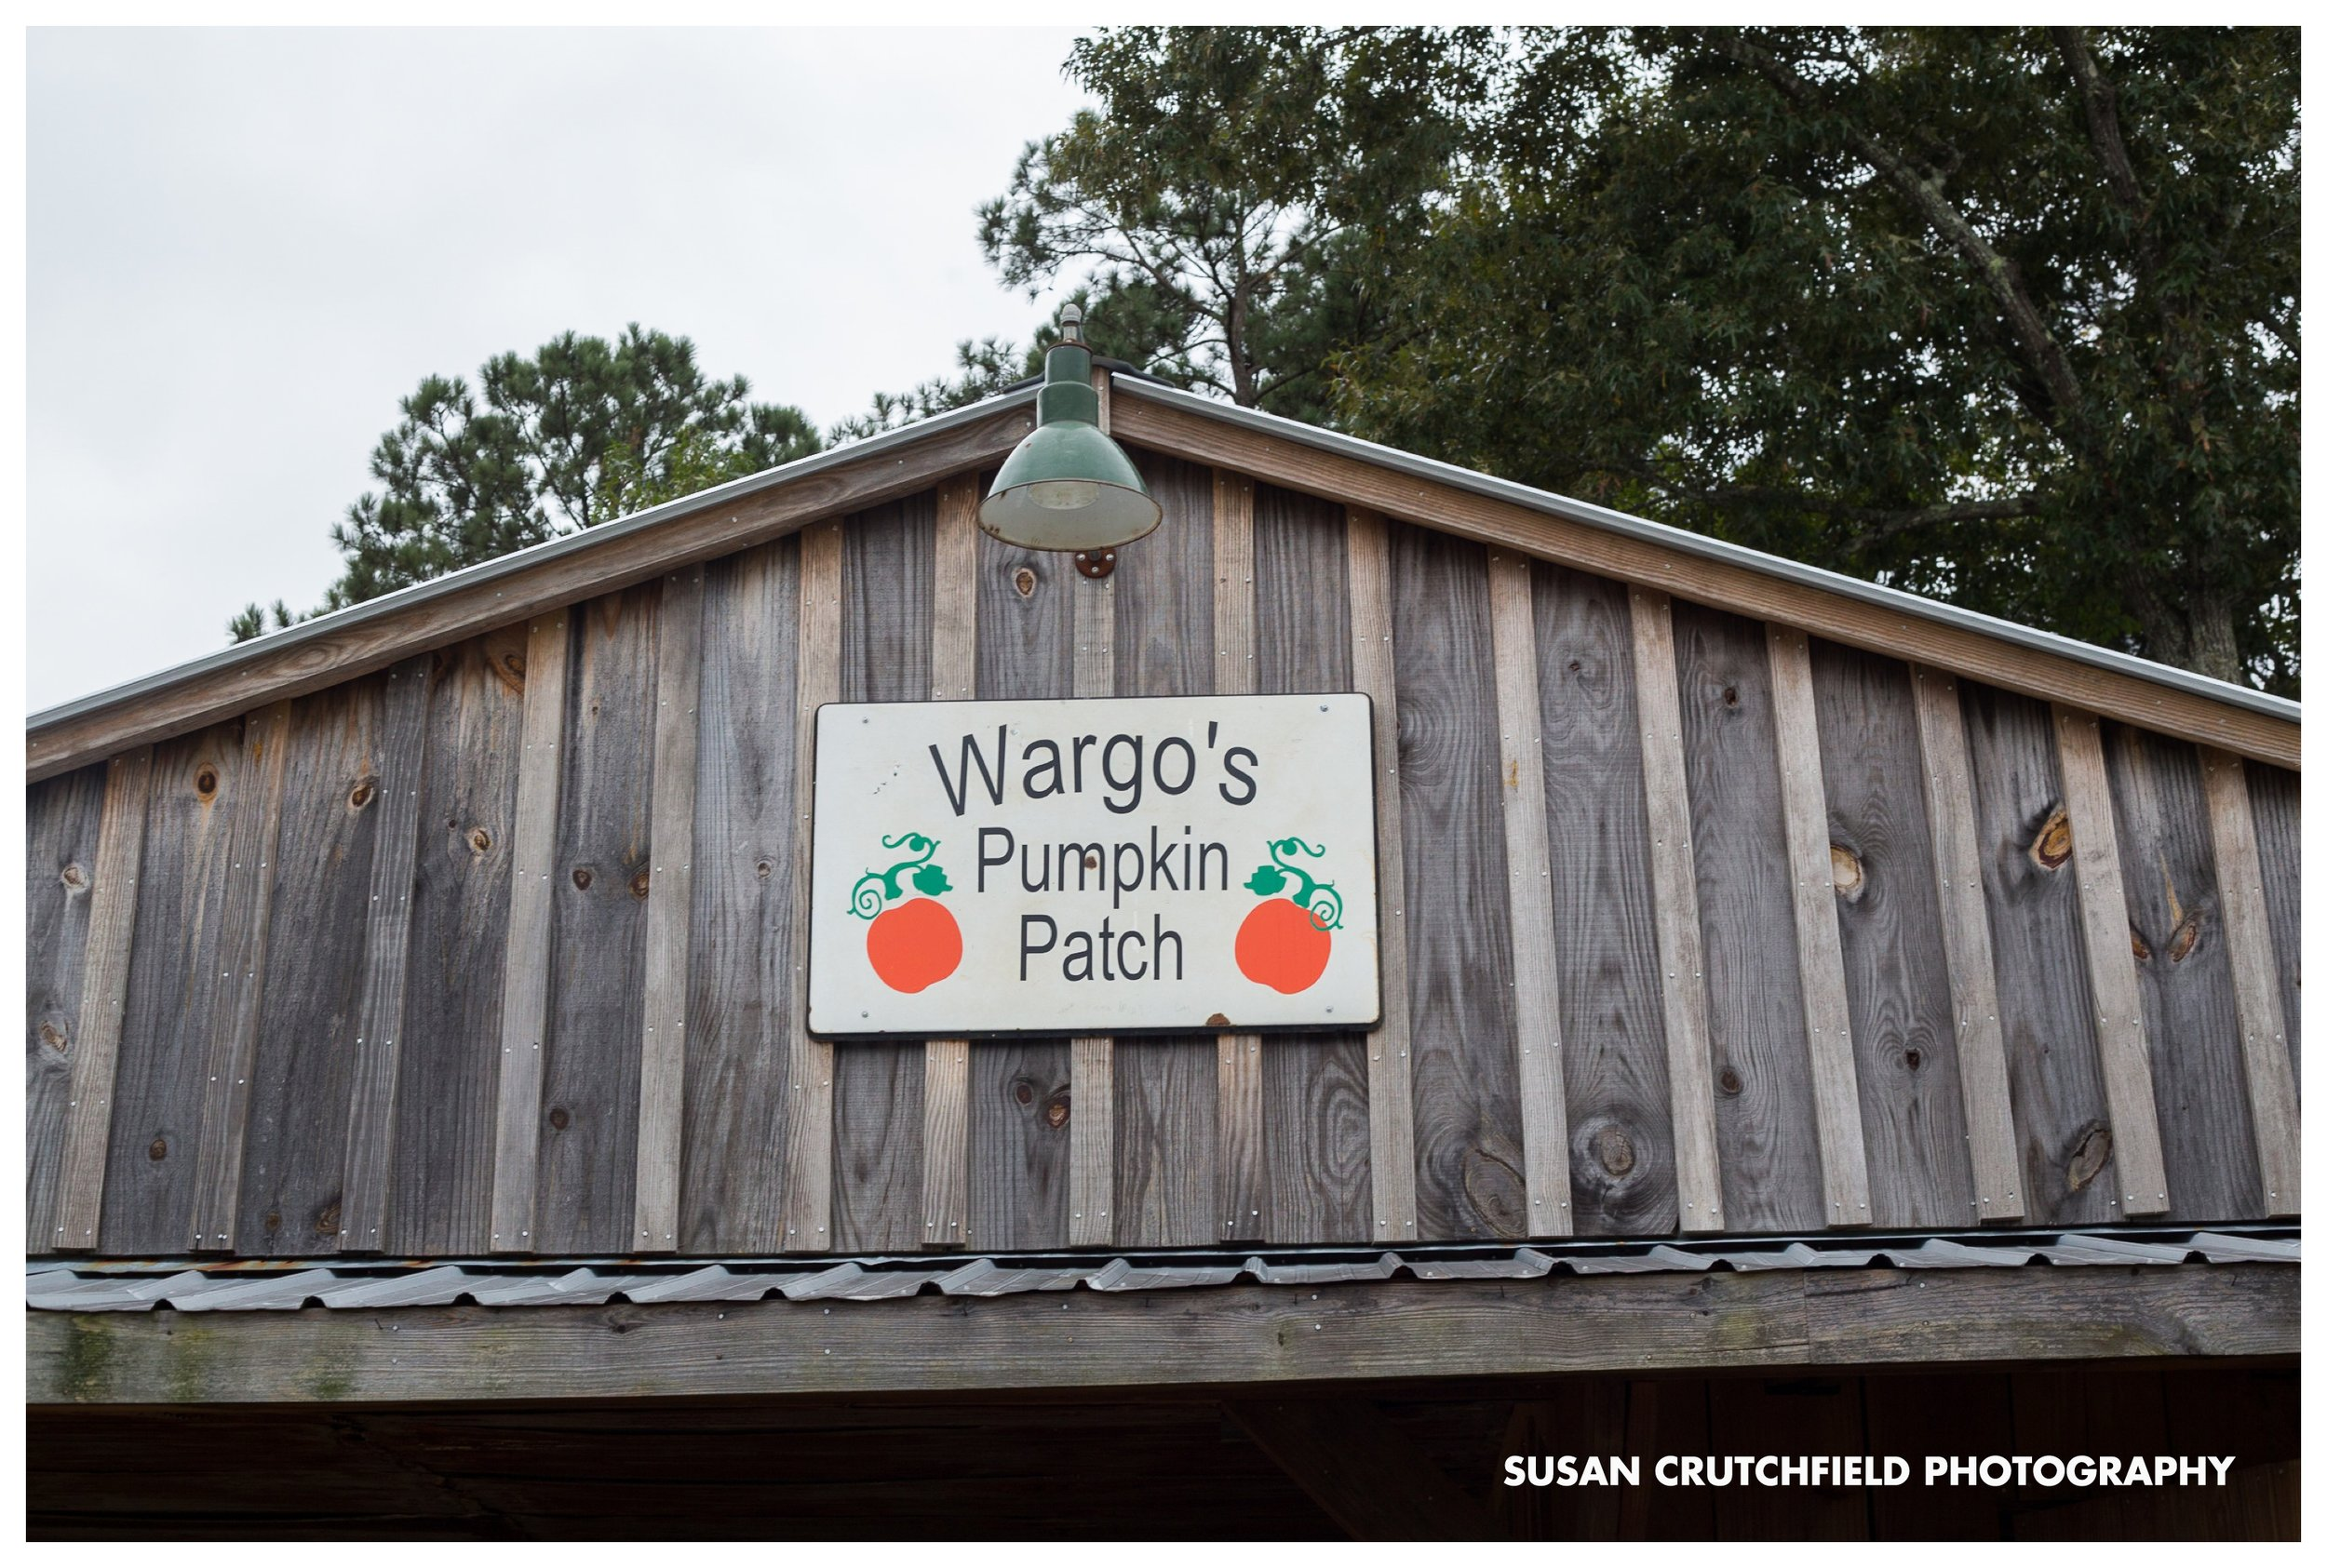 Wargo's Pumpkin Patch Grantville, GA © Susan Crutchfield Photography